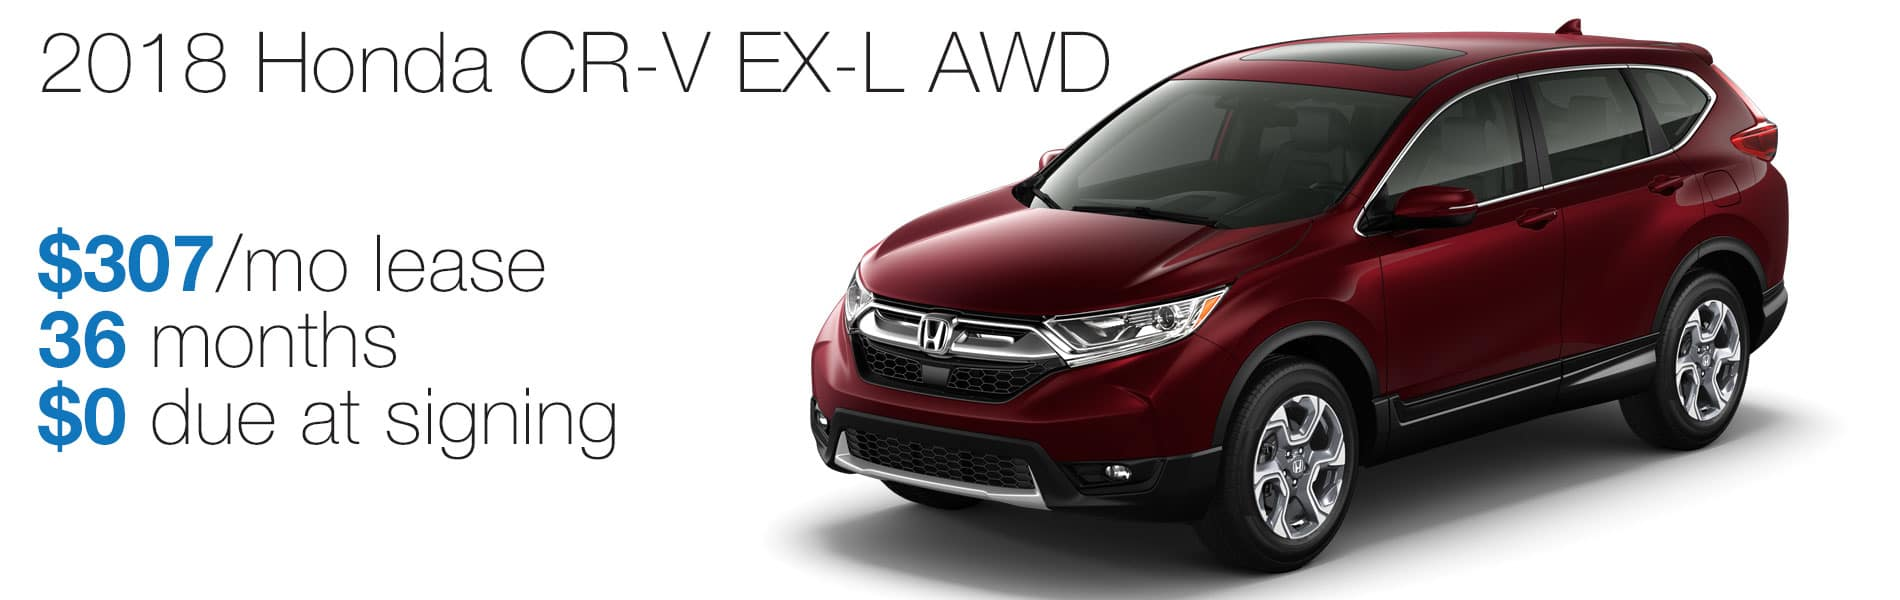 Lease a 2018 Honda CR-V EX-L AWD for $307 per month lease with $0 due at signing